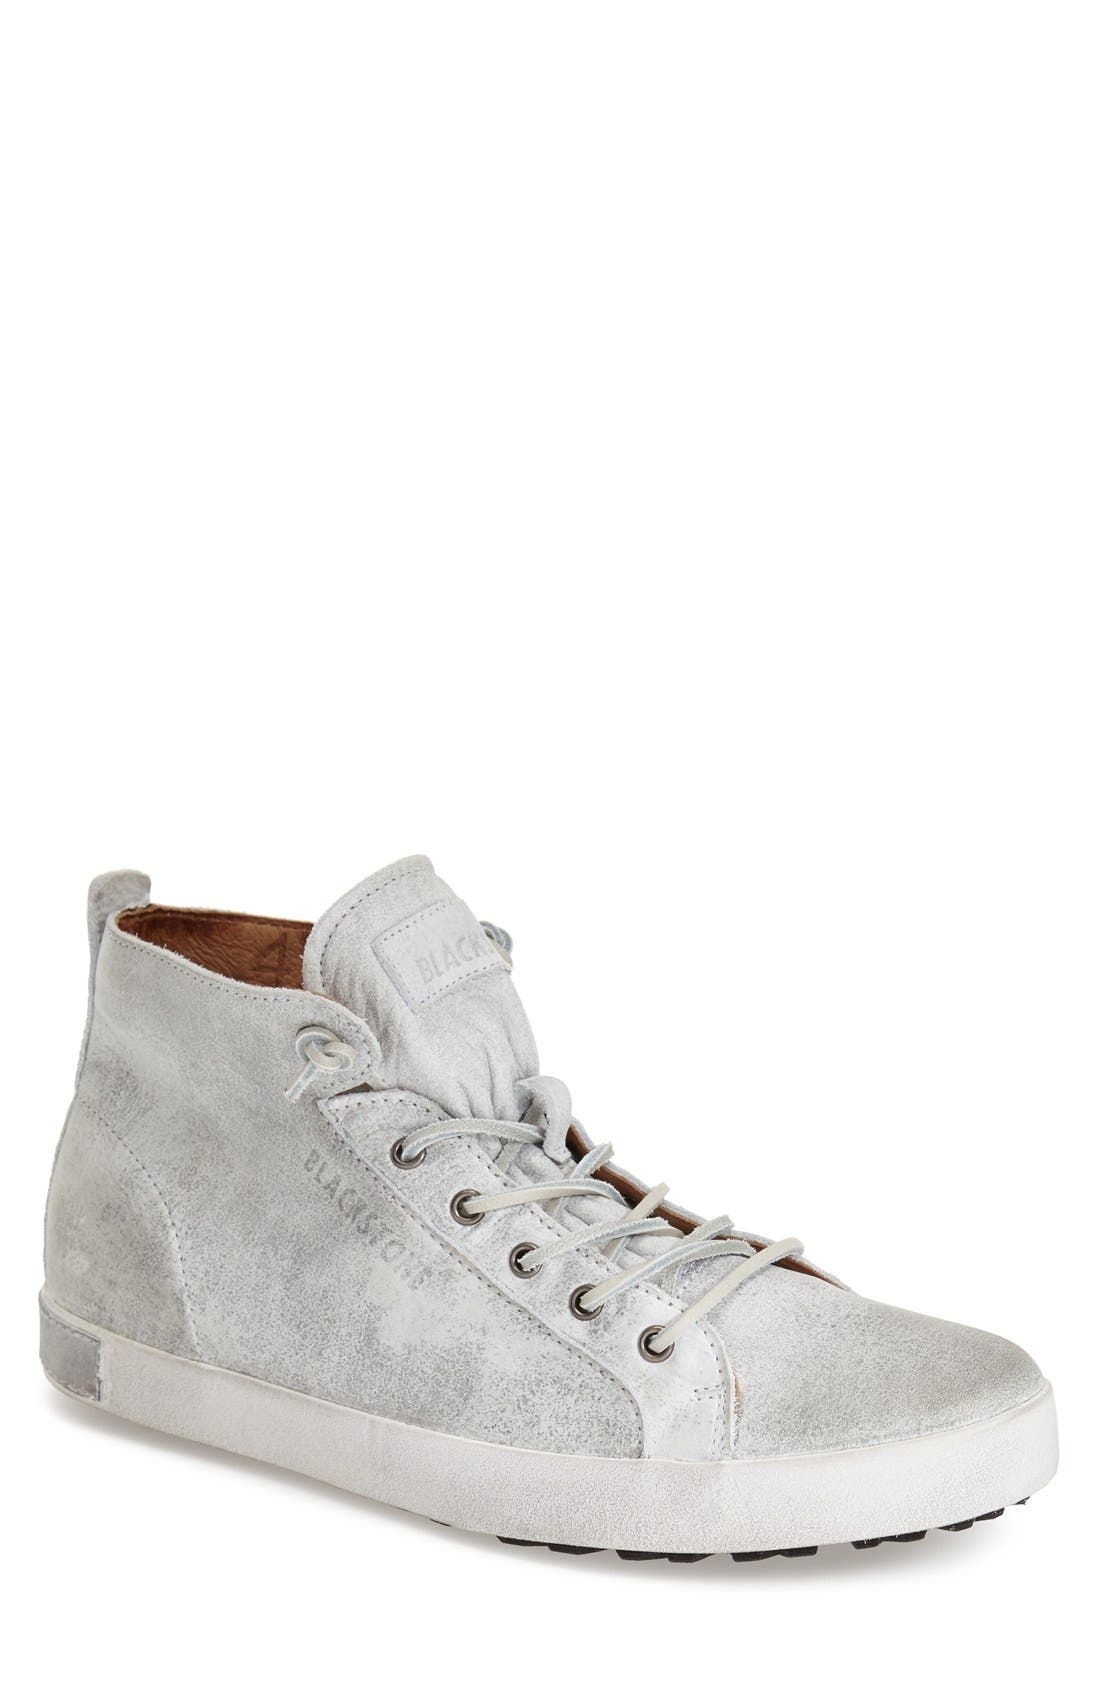 'JM 02' High Top Sneaker,                         Main,                         color, White Leather